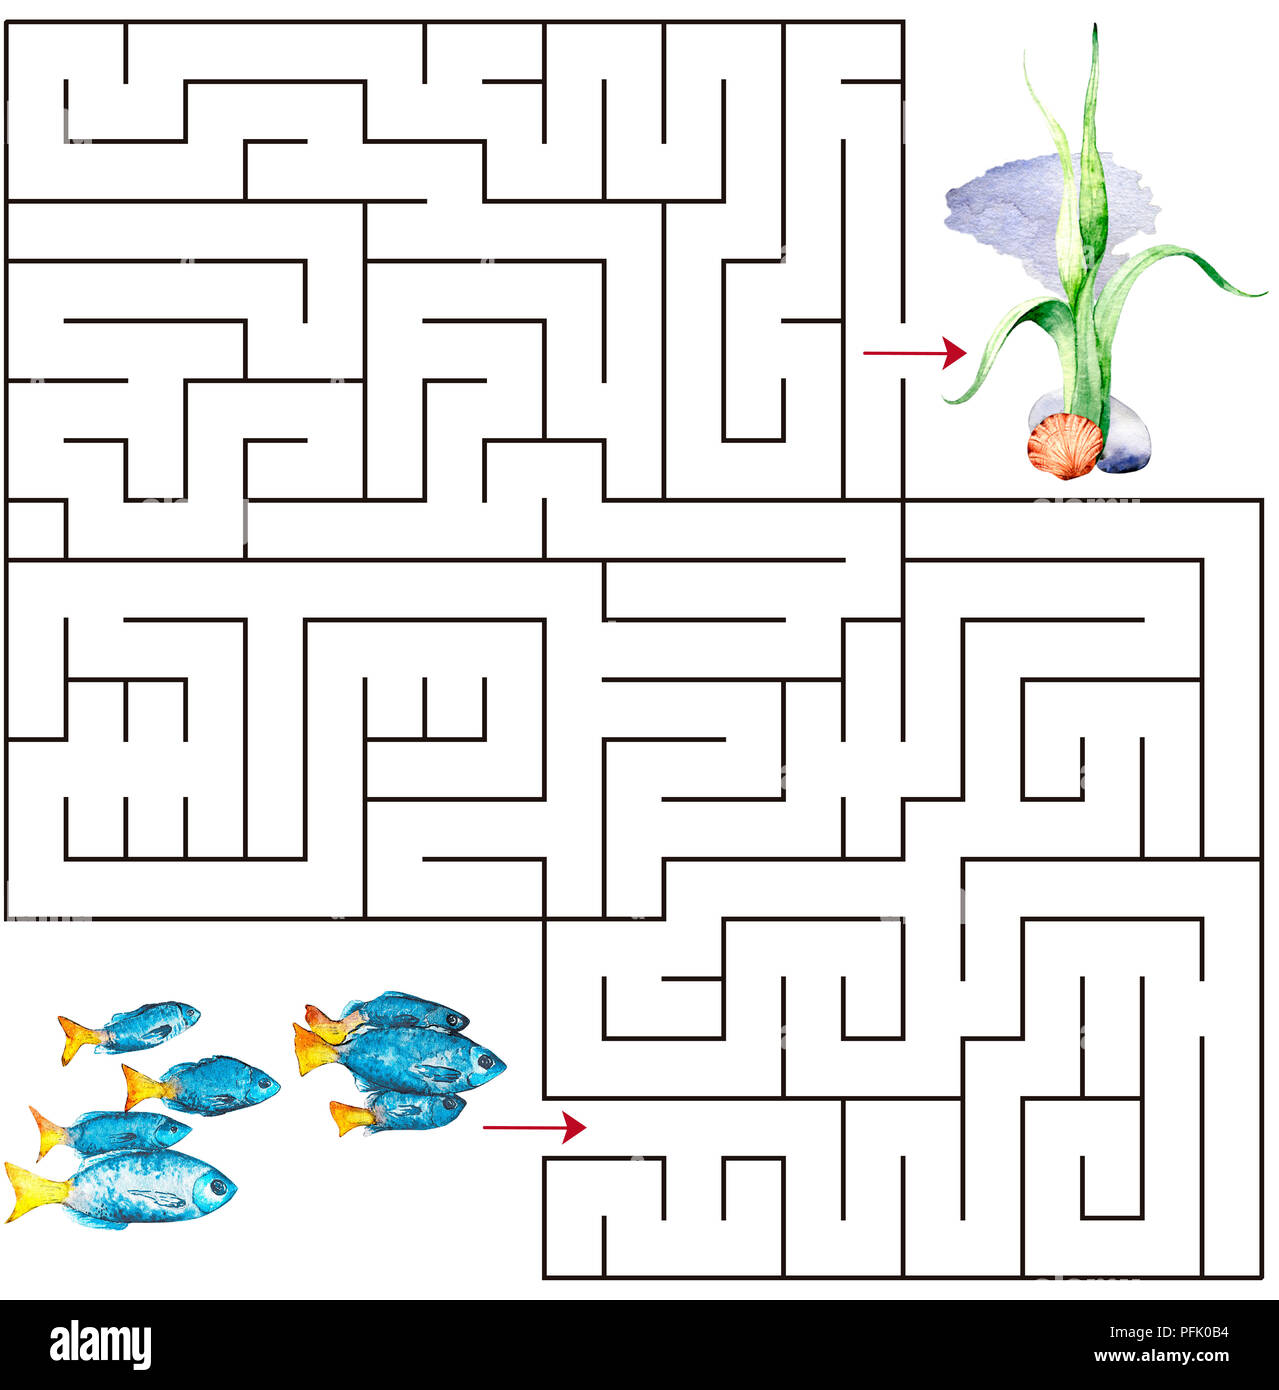 Maze Game For Kids Watercolor Template Page With Game